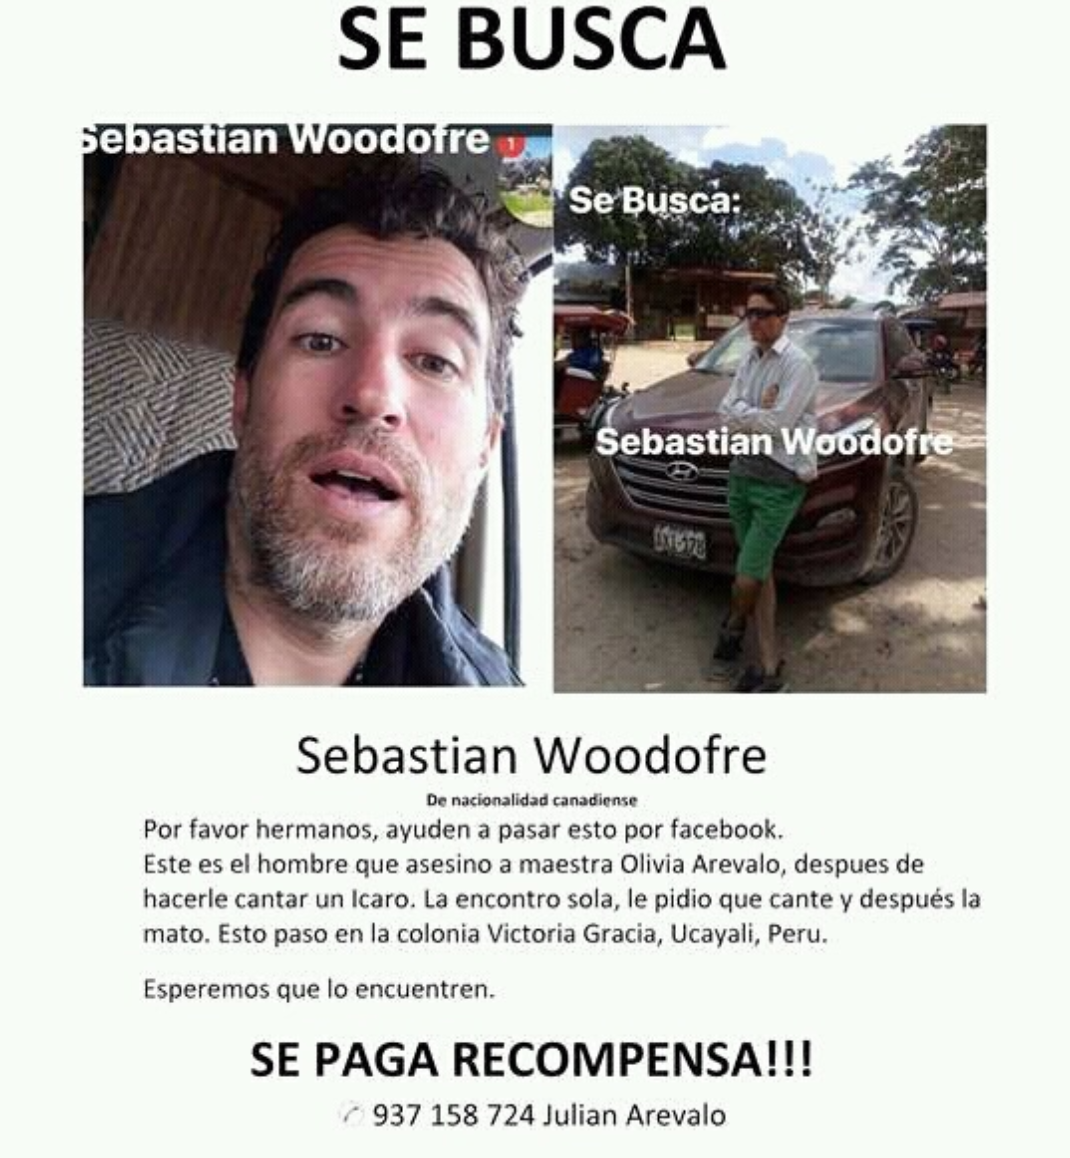 Wanted Poster Of Sebastian Woodroffe For The Murder Of Olivia Arevalo Lomas That Was Released By Tribal Members In The Area